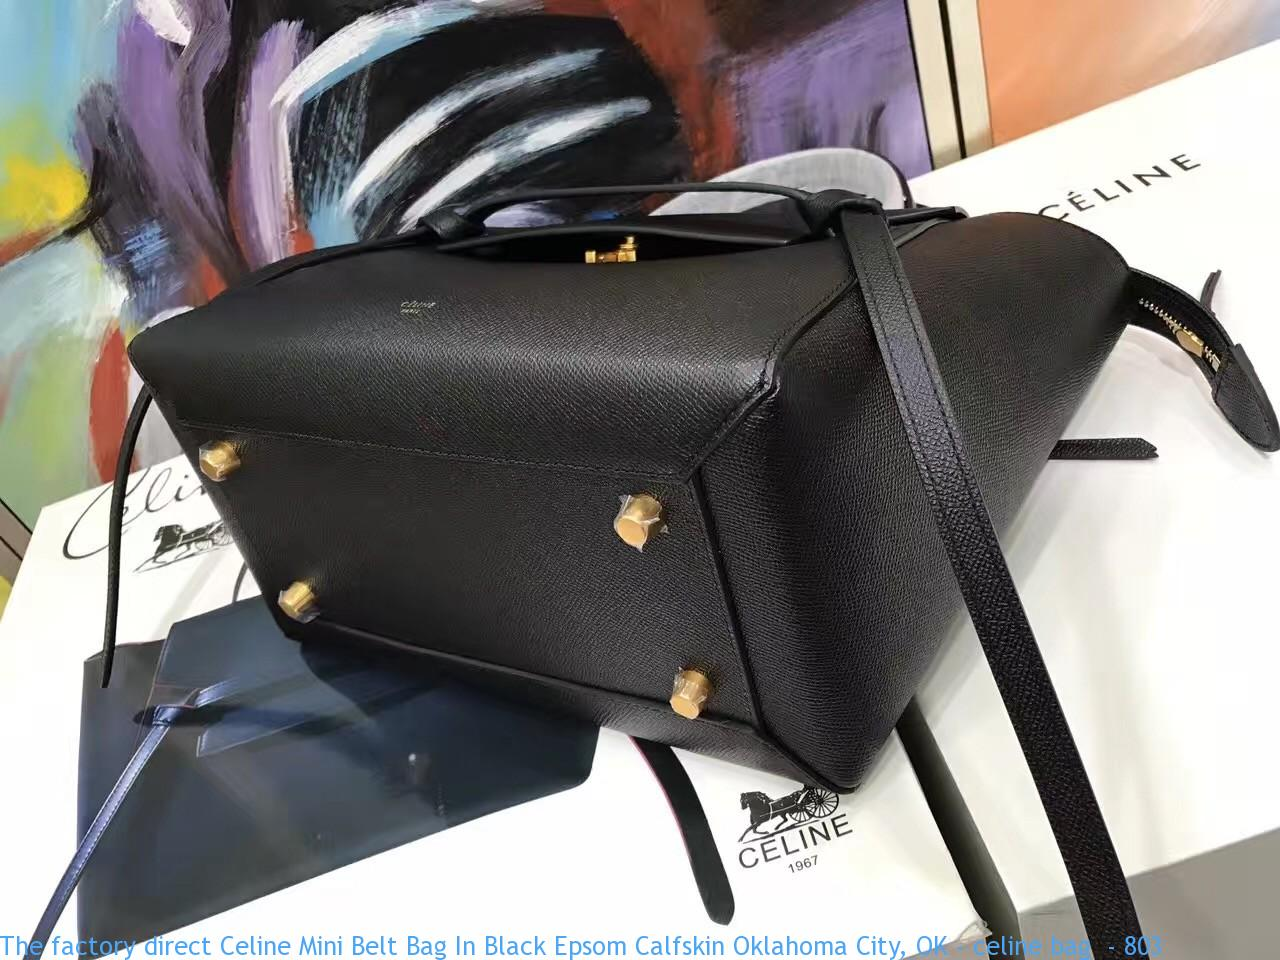 The Factory Direct Celine Mini Belt Bag In Black Epsom Calfskin Oklahoma City Ok Celine Bag 803 Celine Bag Replica Buy Fake Celine Bags Online Queenreplicaceline